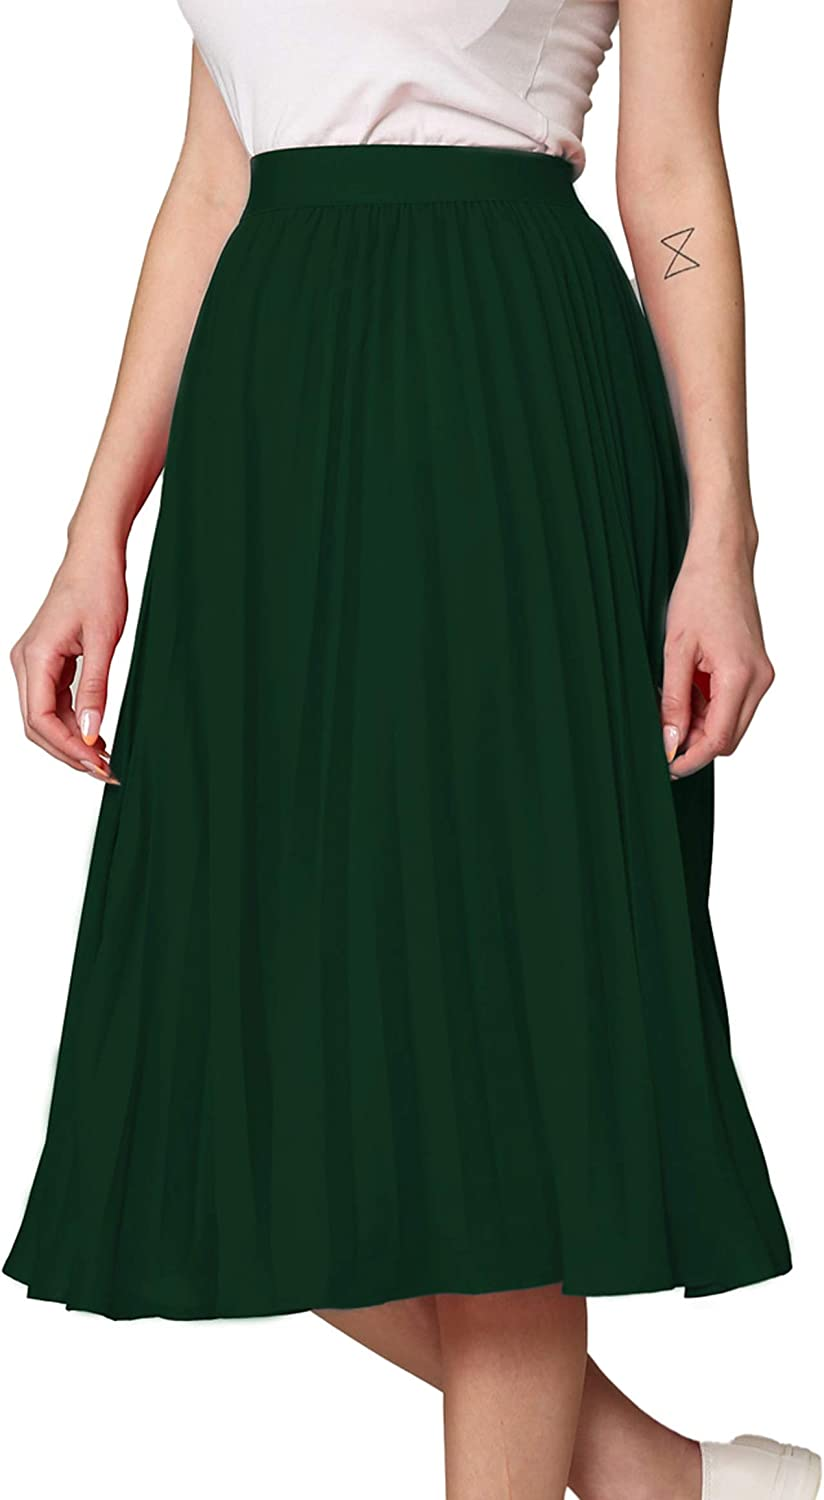 Made By Johnny Women's High Elastic Waist Pleated Mid A-Line Swing Skirt